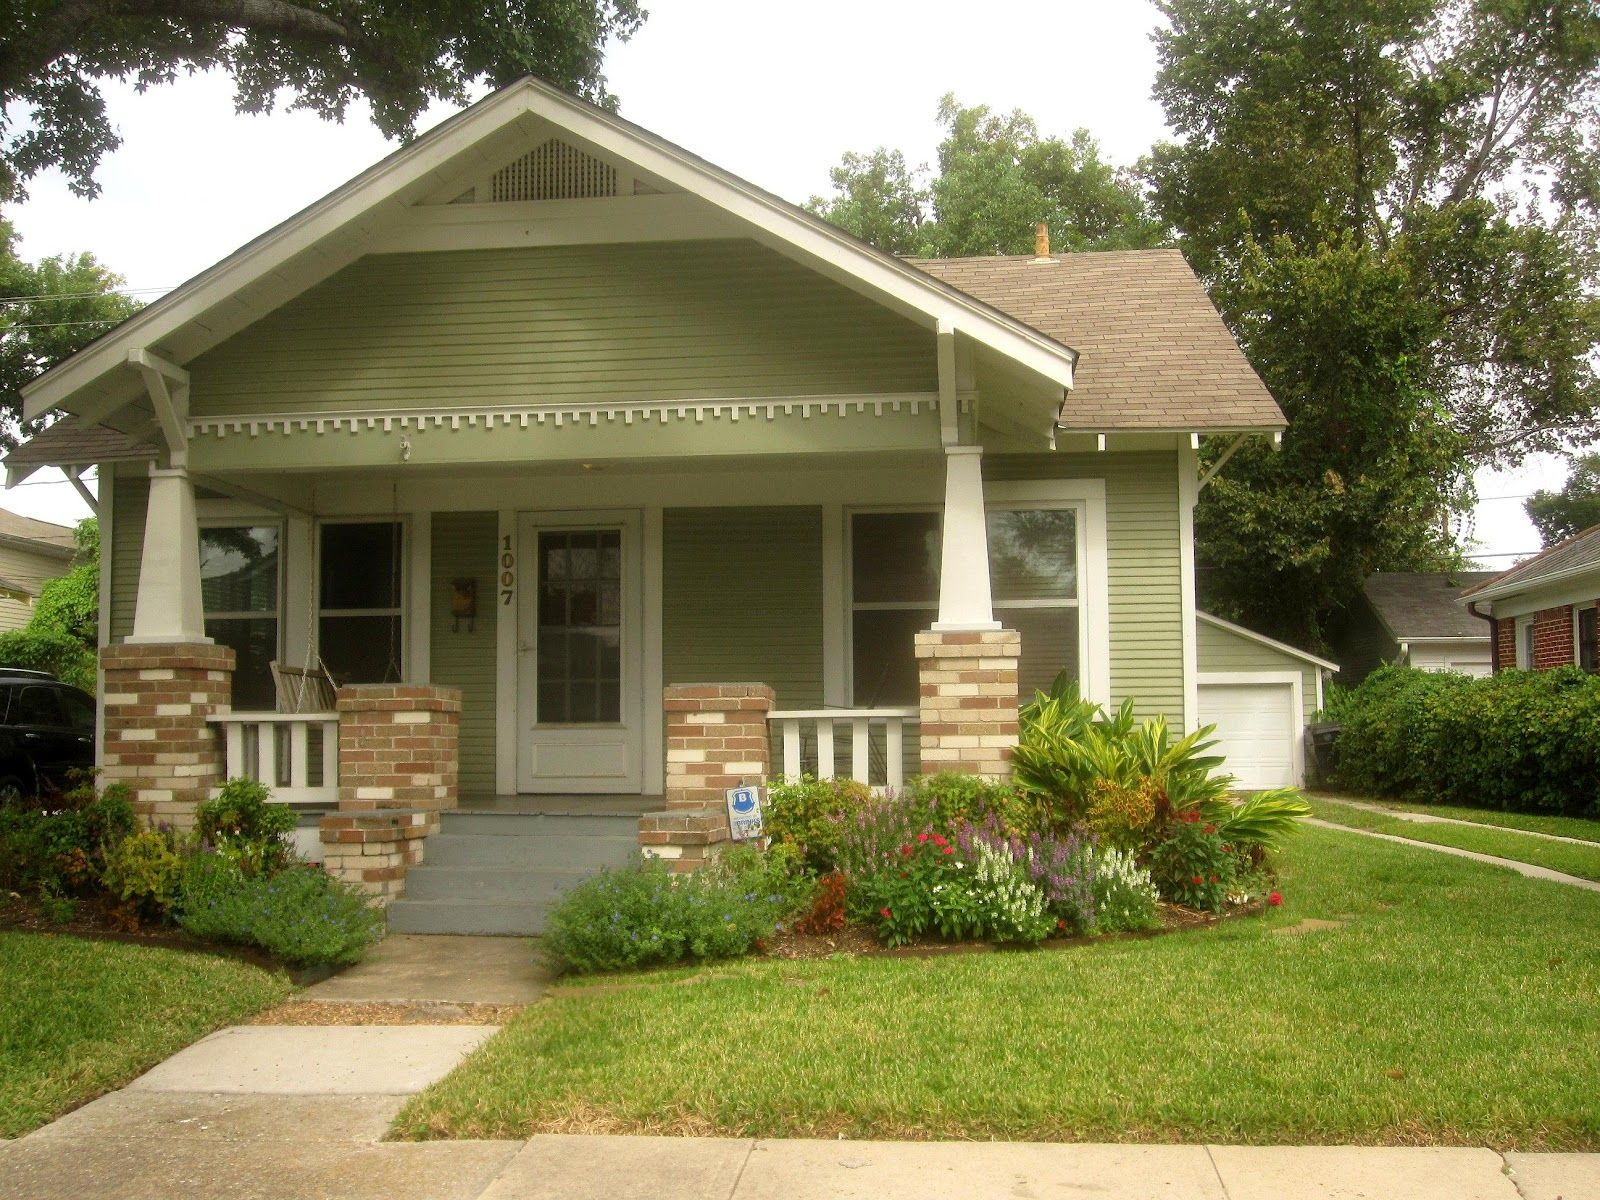 The OtHeR HoUsToN: BUNGALOWS IN THE NORHILL HISTORIC